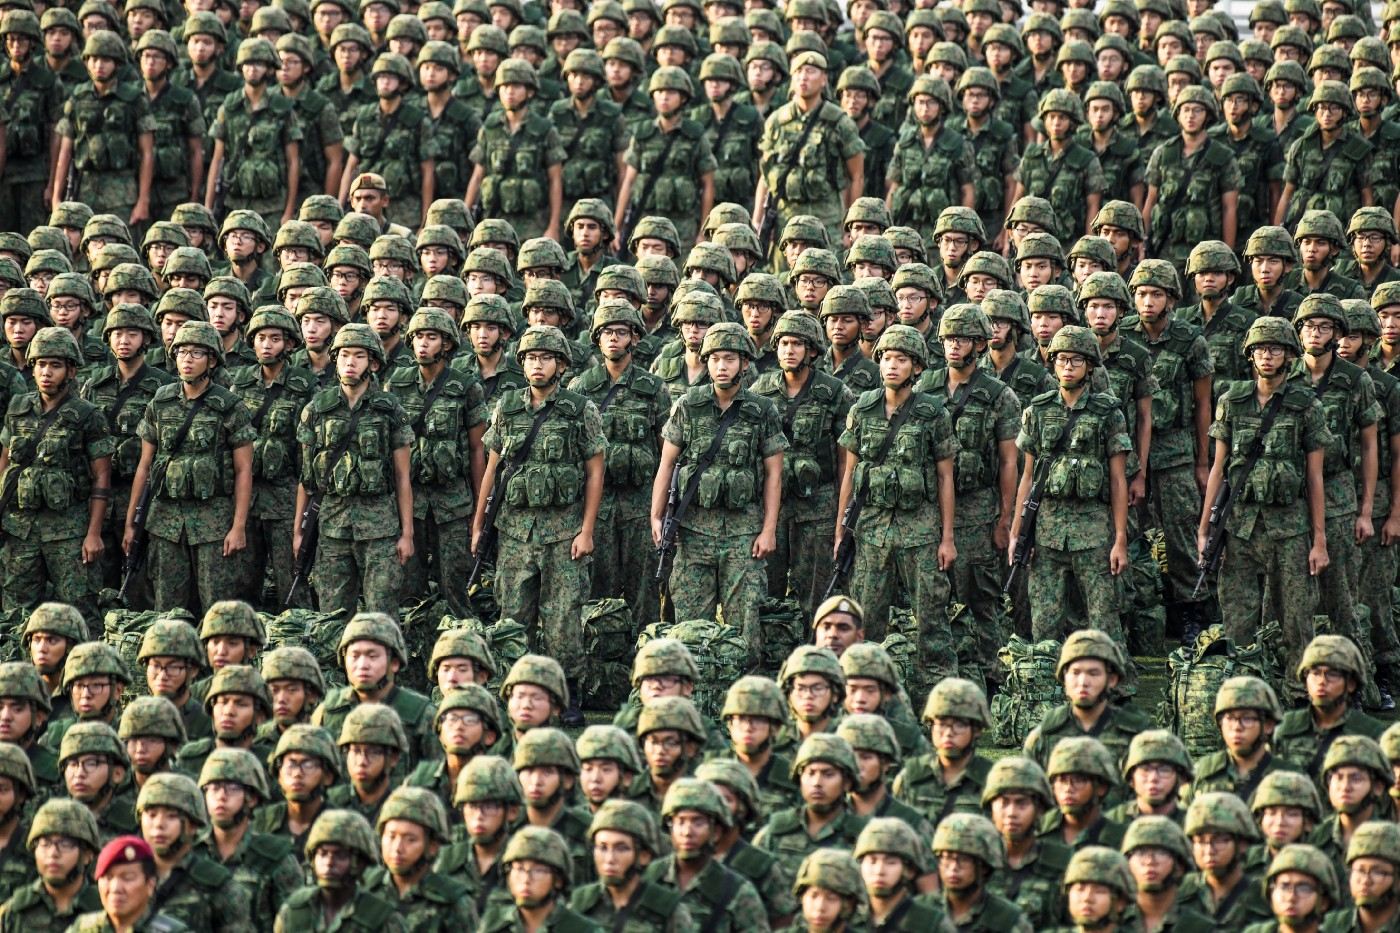 A sea of green; soldiers in a parade